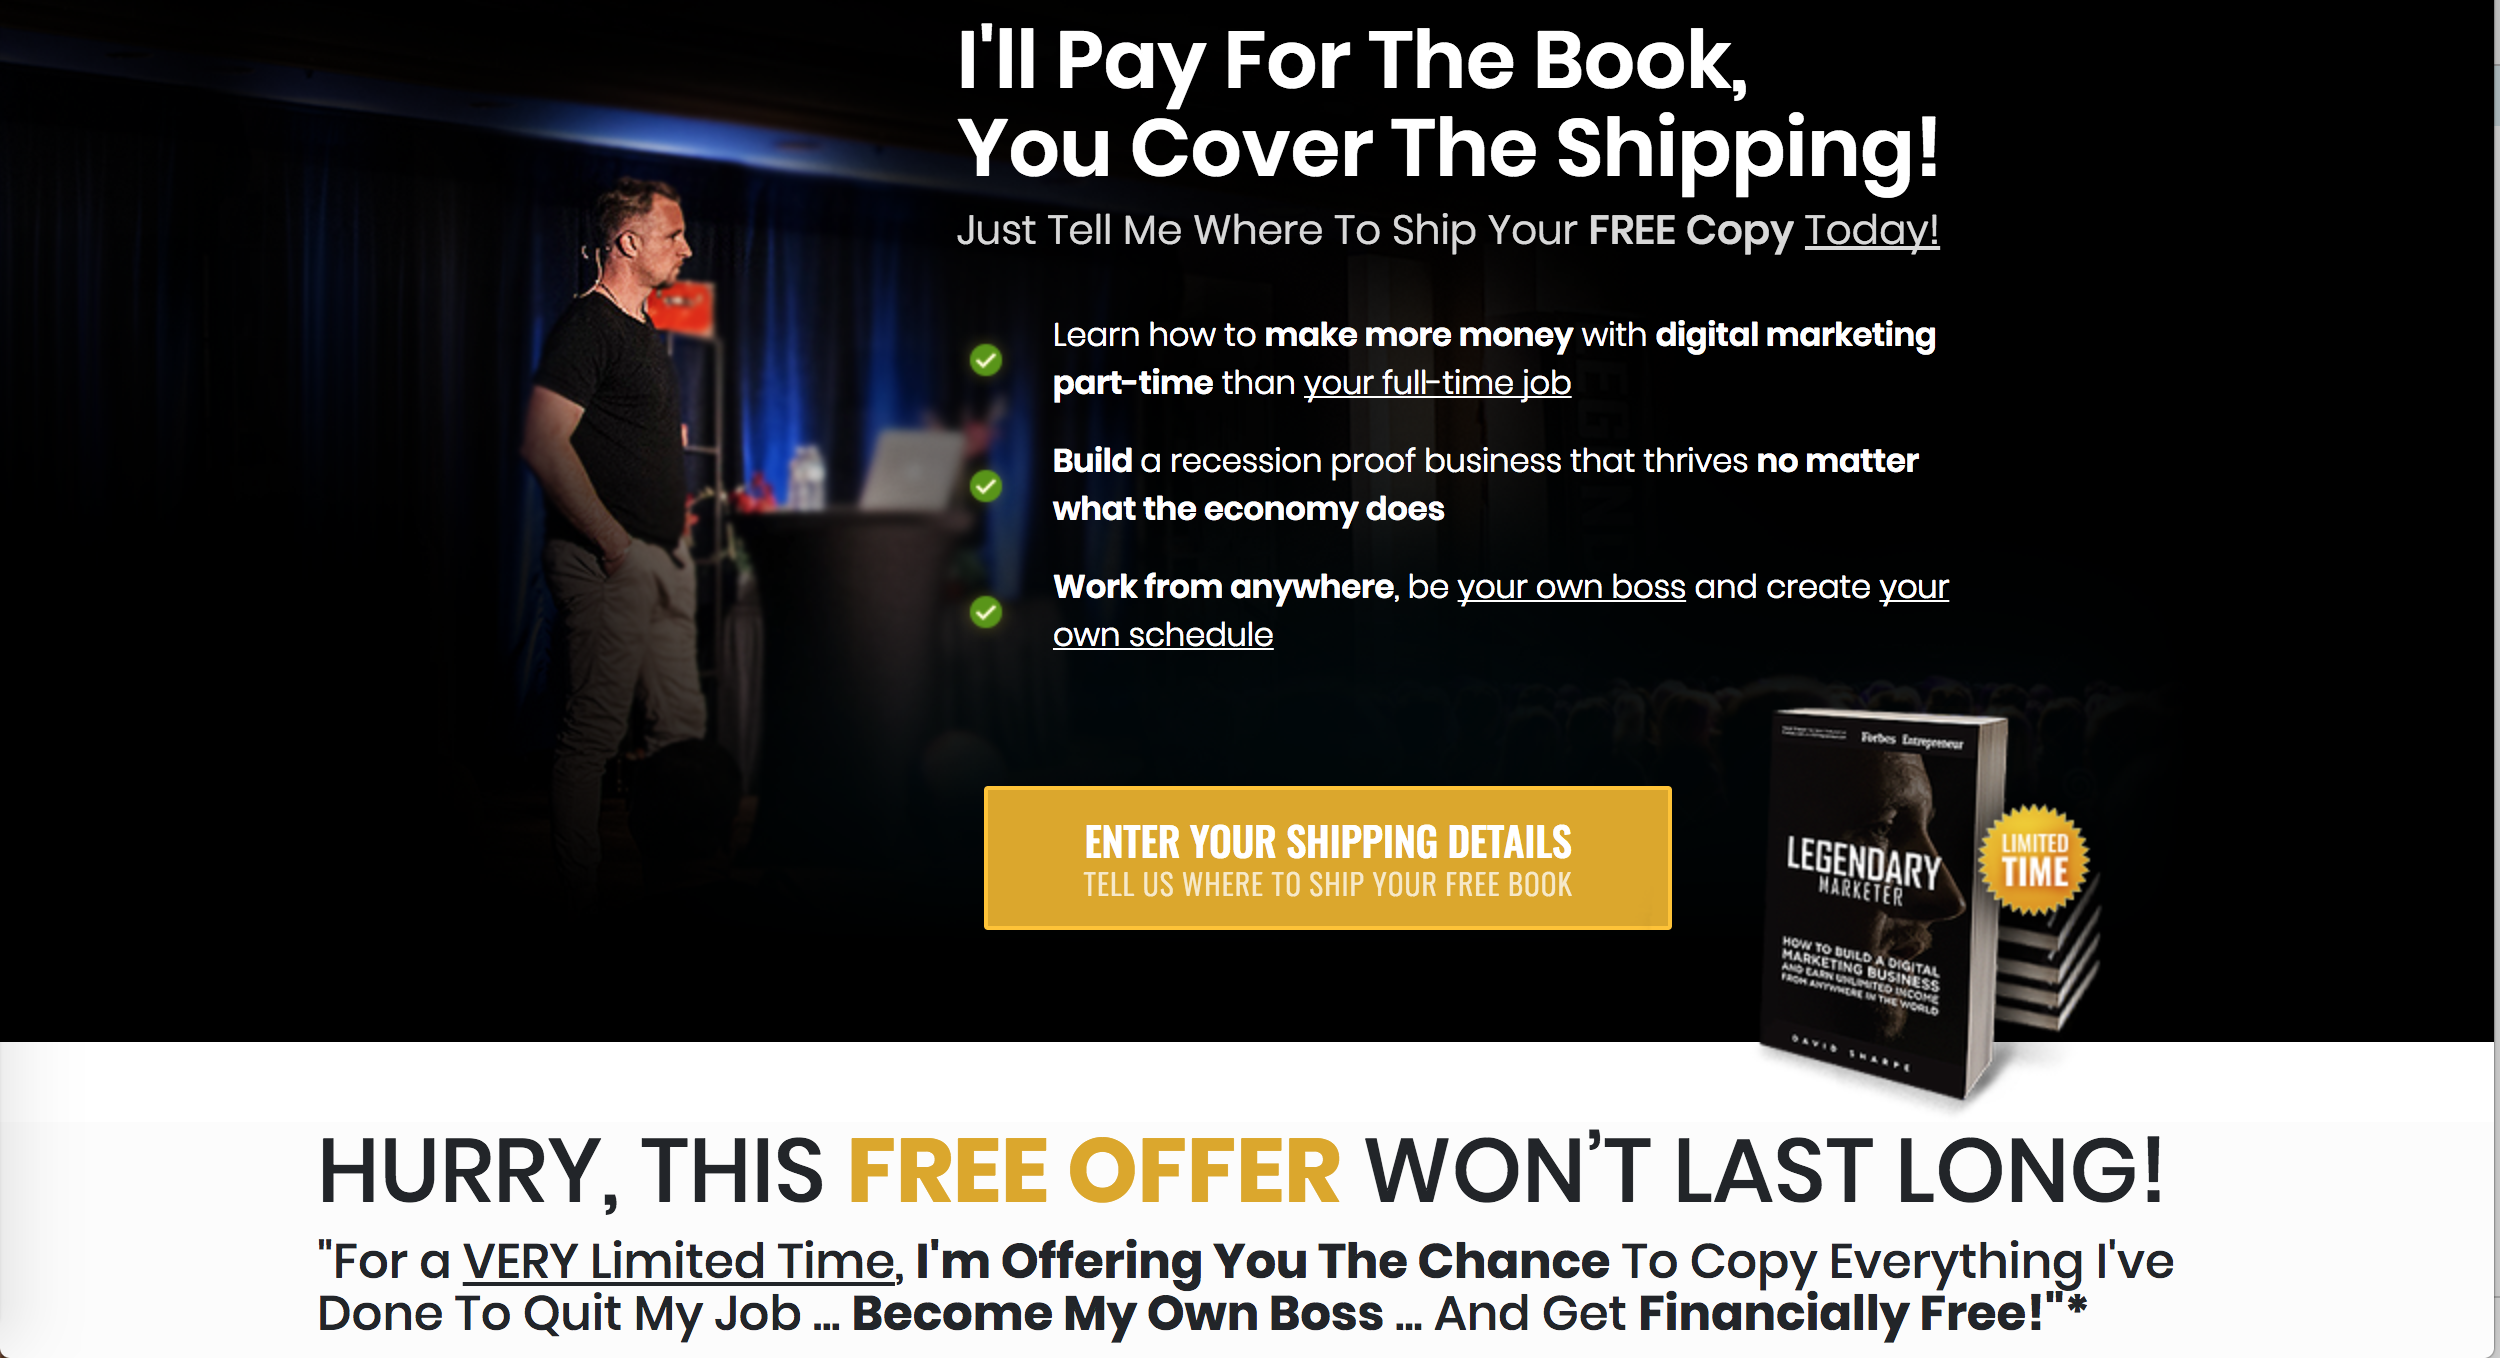 Best Deals On Internet Marketing Program  Legendary Marketer